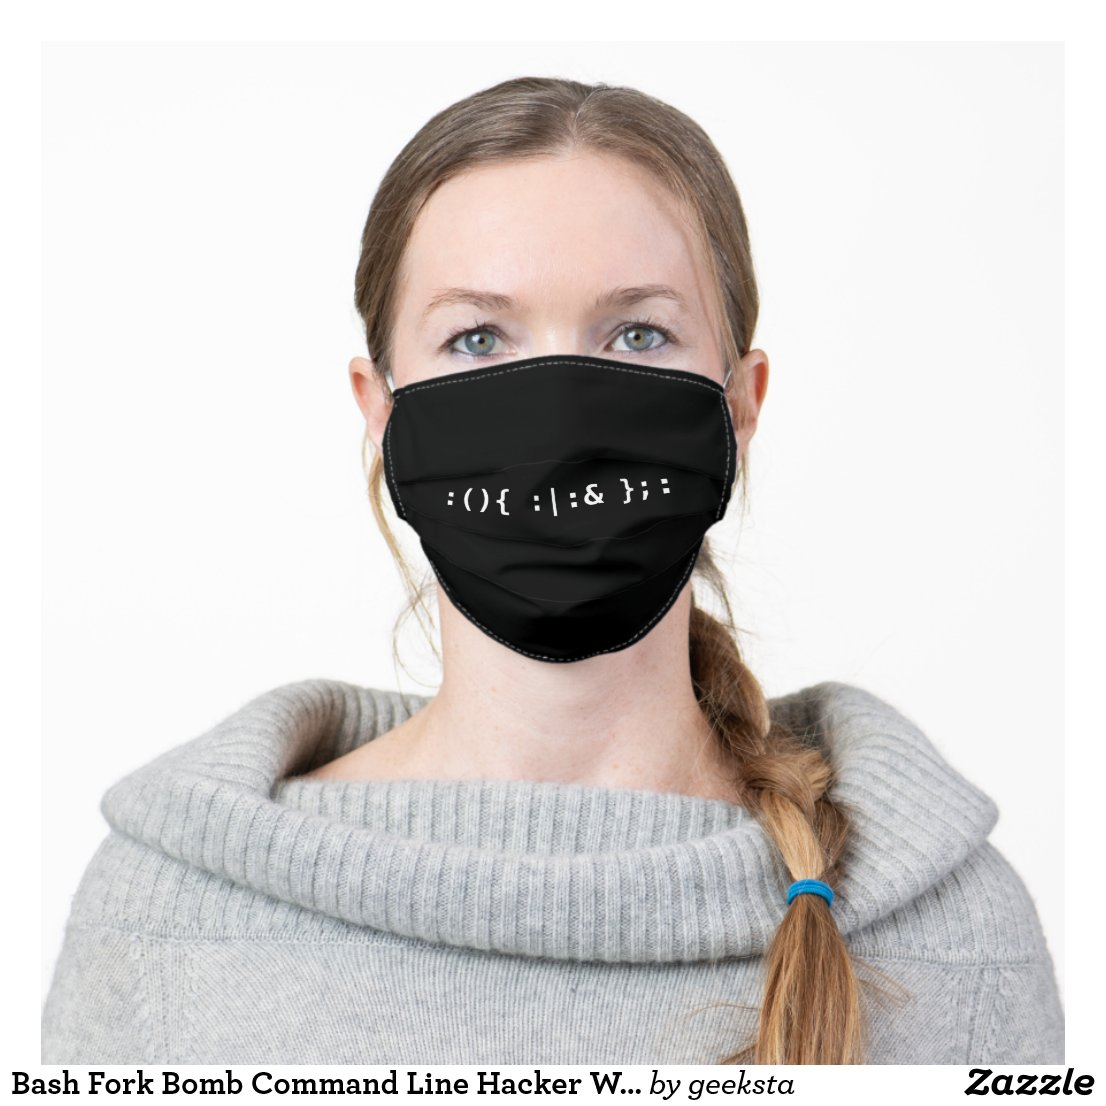 Bash Fork Bomb Command Line Hacker White Text Cloth Face Mask